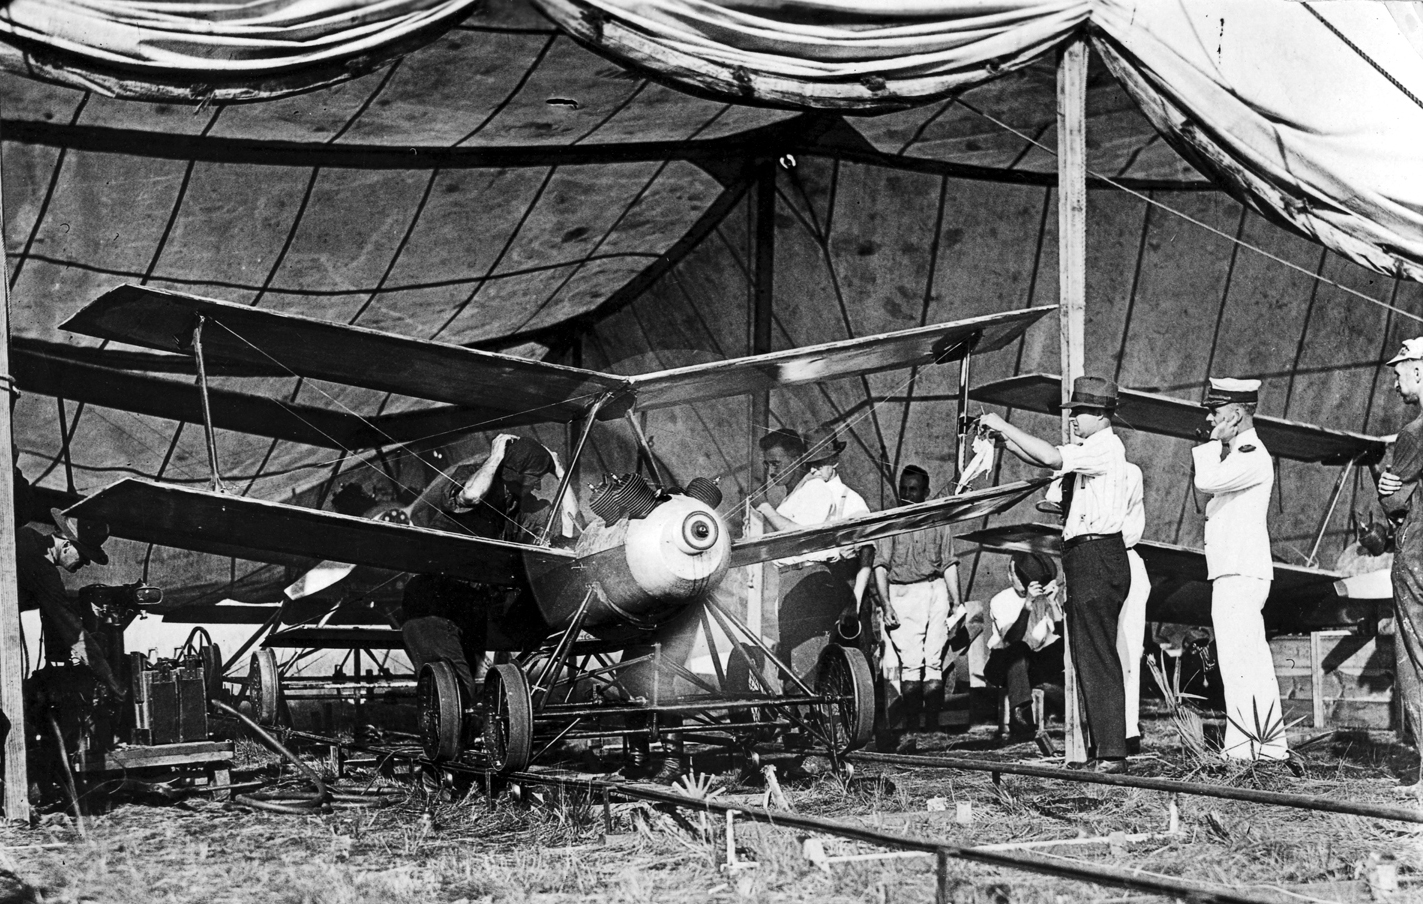 Kettering Bug (US Army. c. 1918)